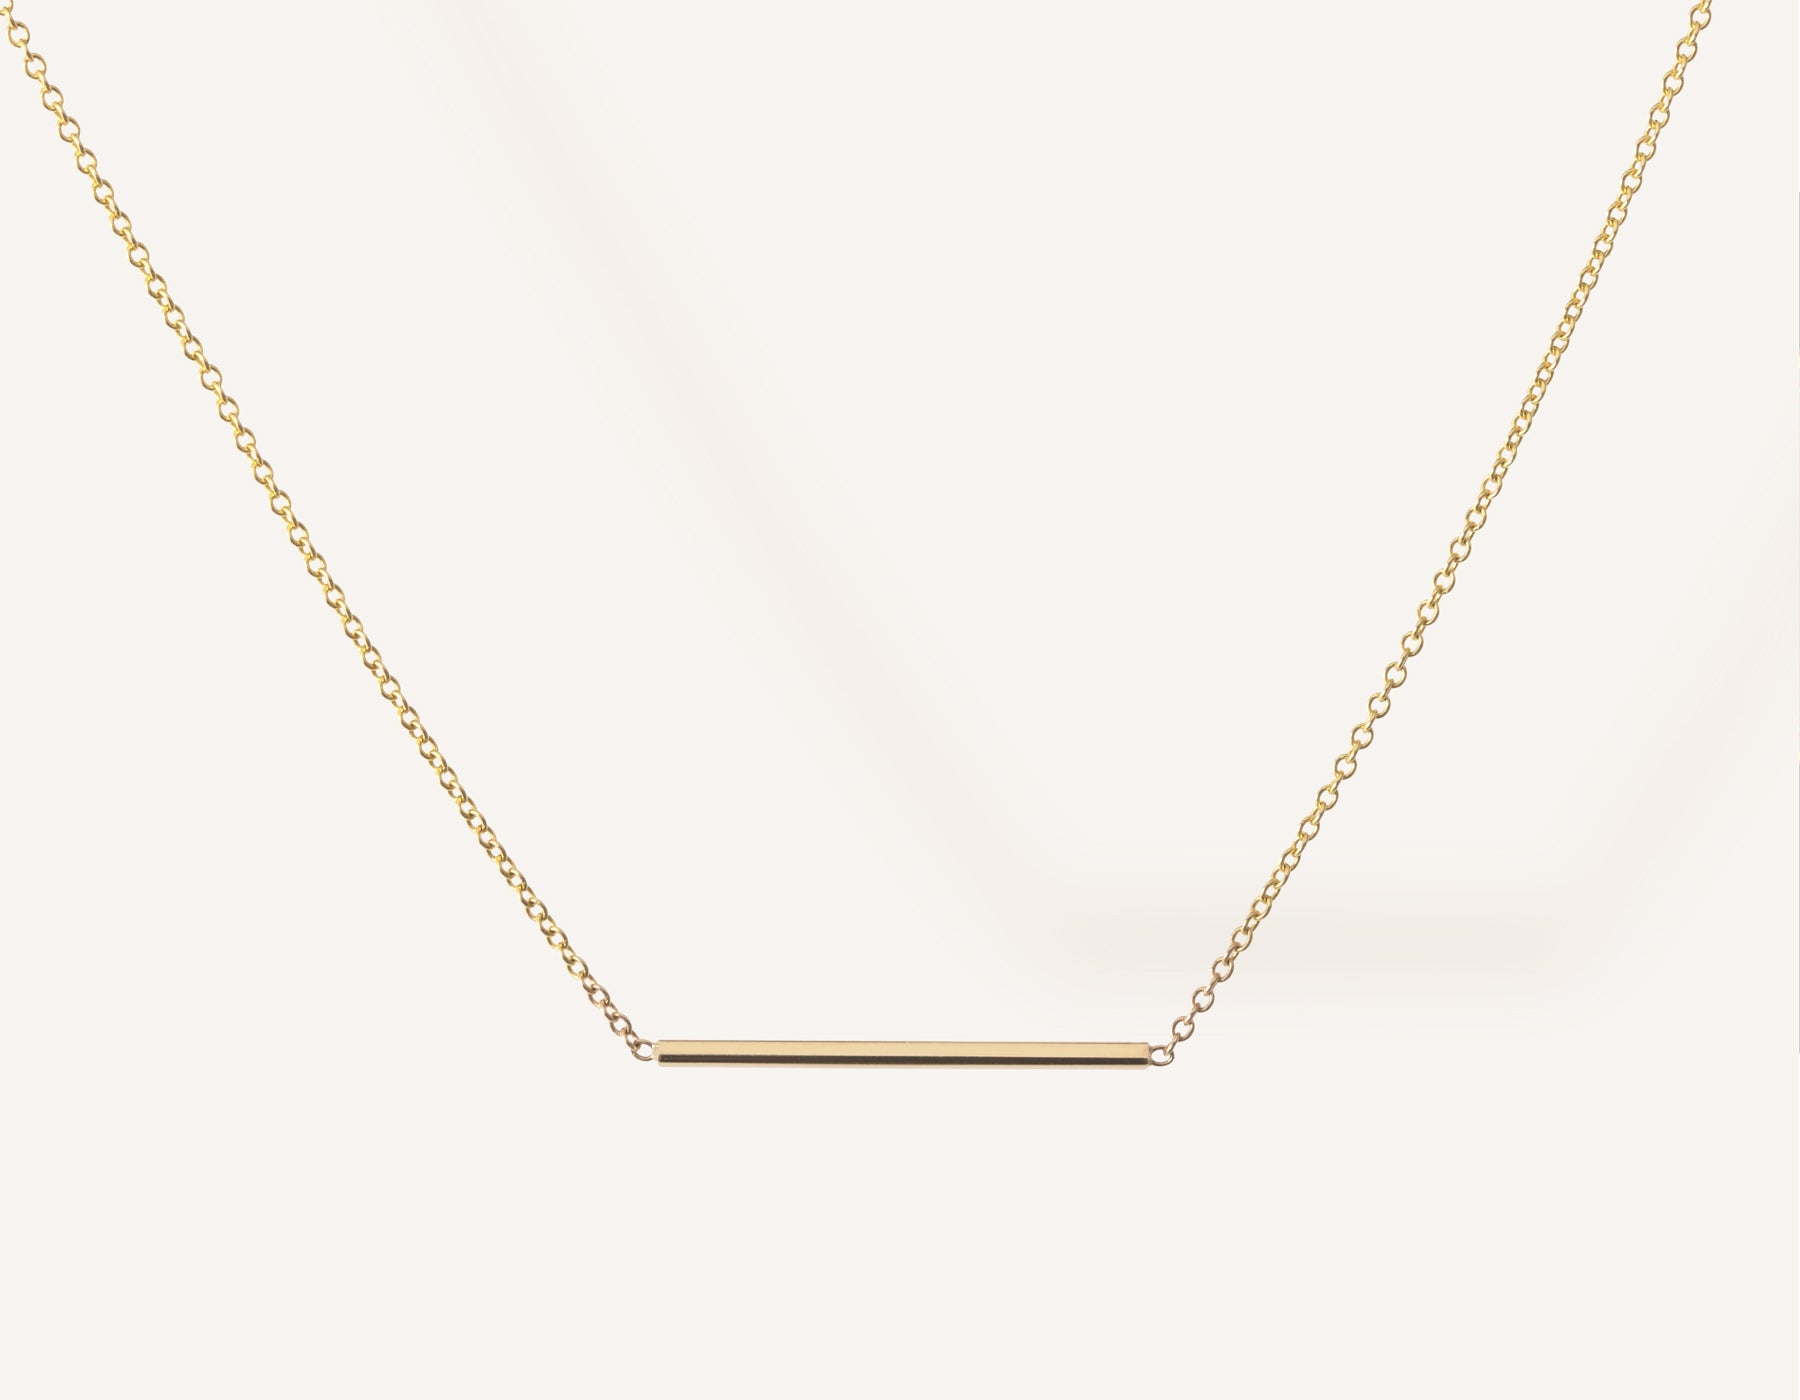 Simple classic Line Necklace 14k solid gold small rectangular bar thin chain spring ring clasp Vrai & Oro minimalist jewelry, 14K Yellow Gold